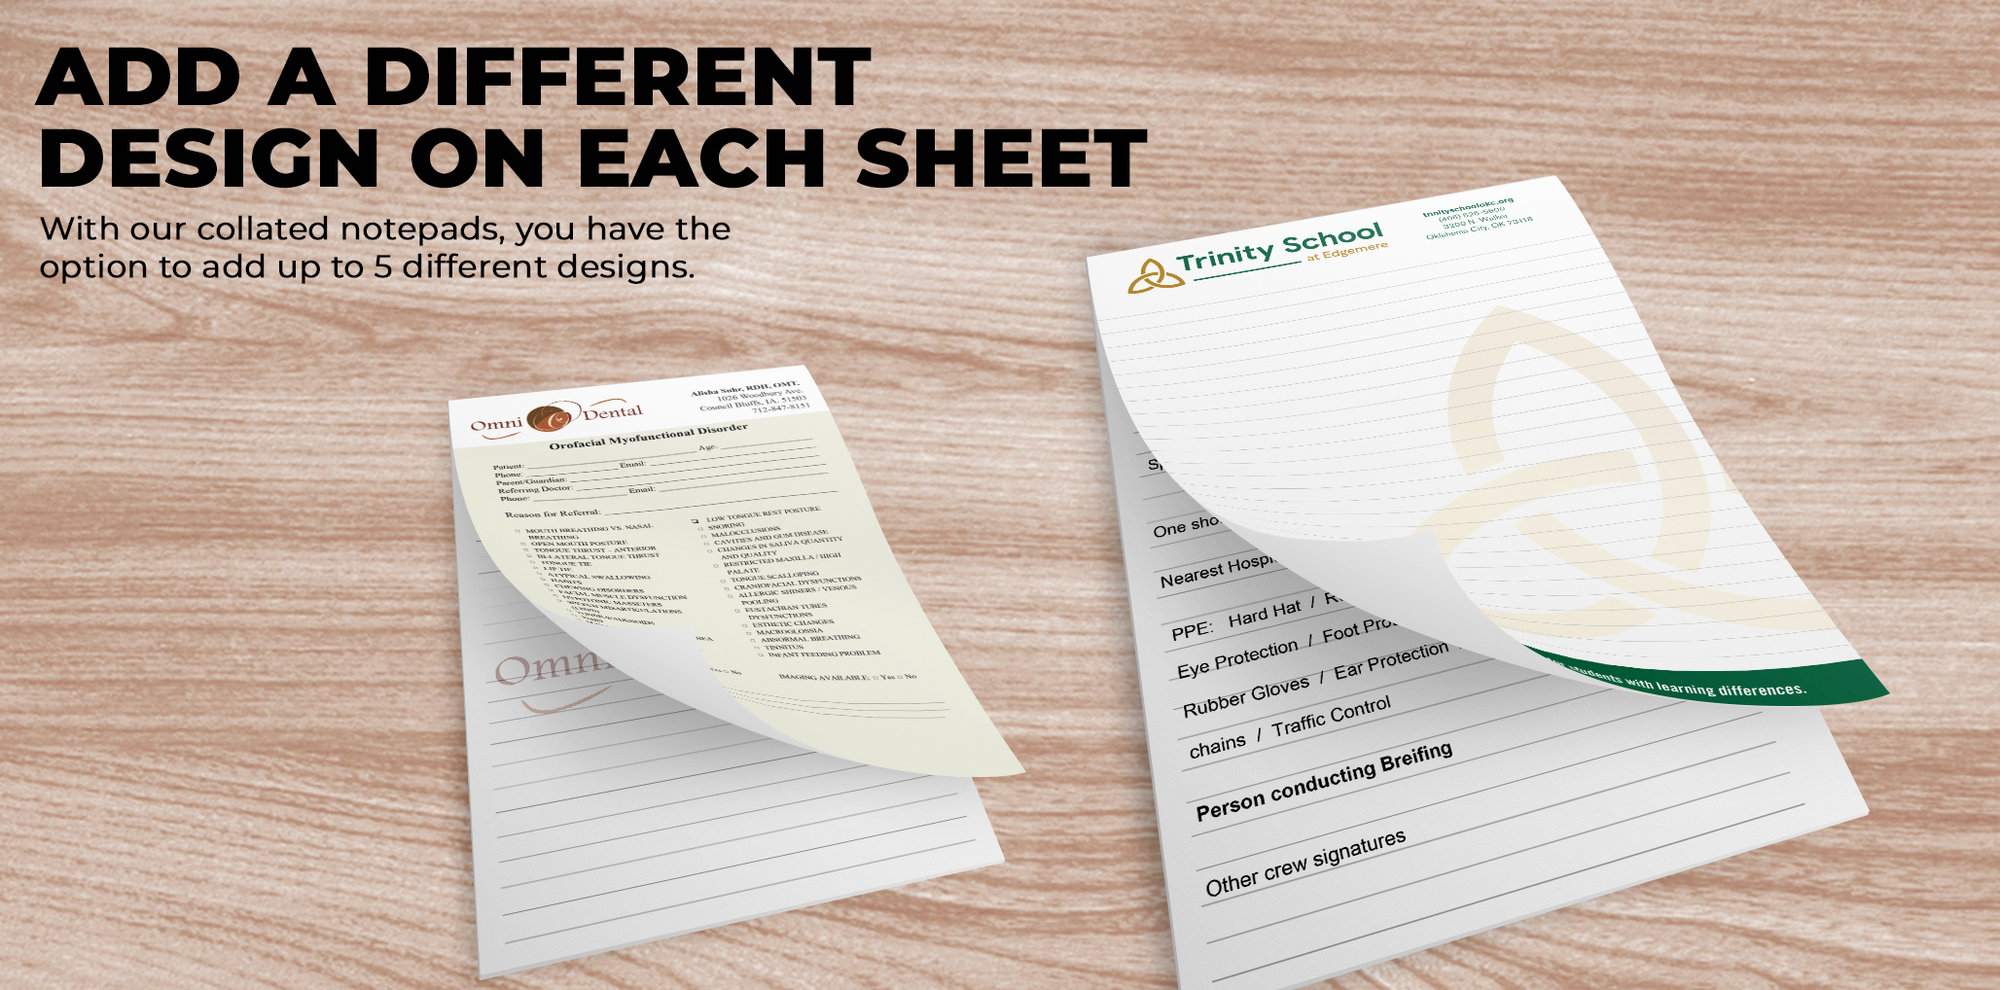 https://printpps.com/images/products_gallery_images/Collated-Notepads_Product-Page-Banner_2_Revised2.jpg